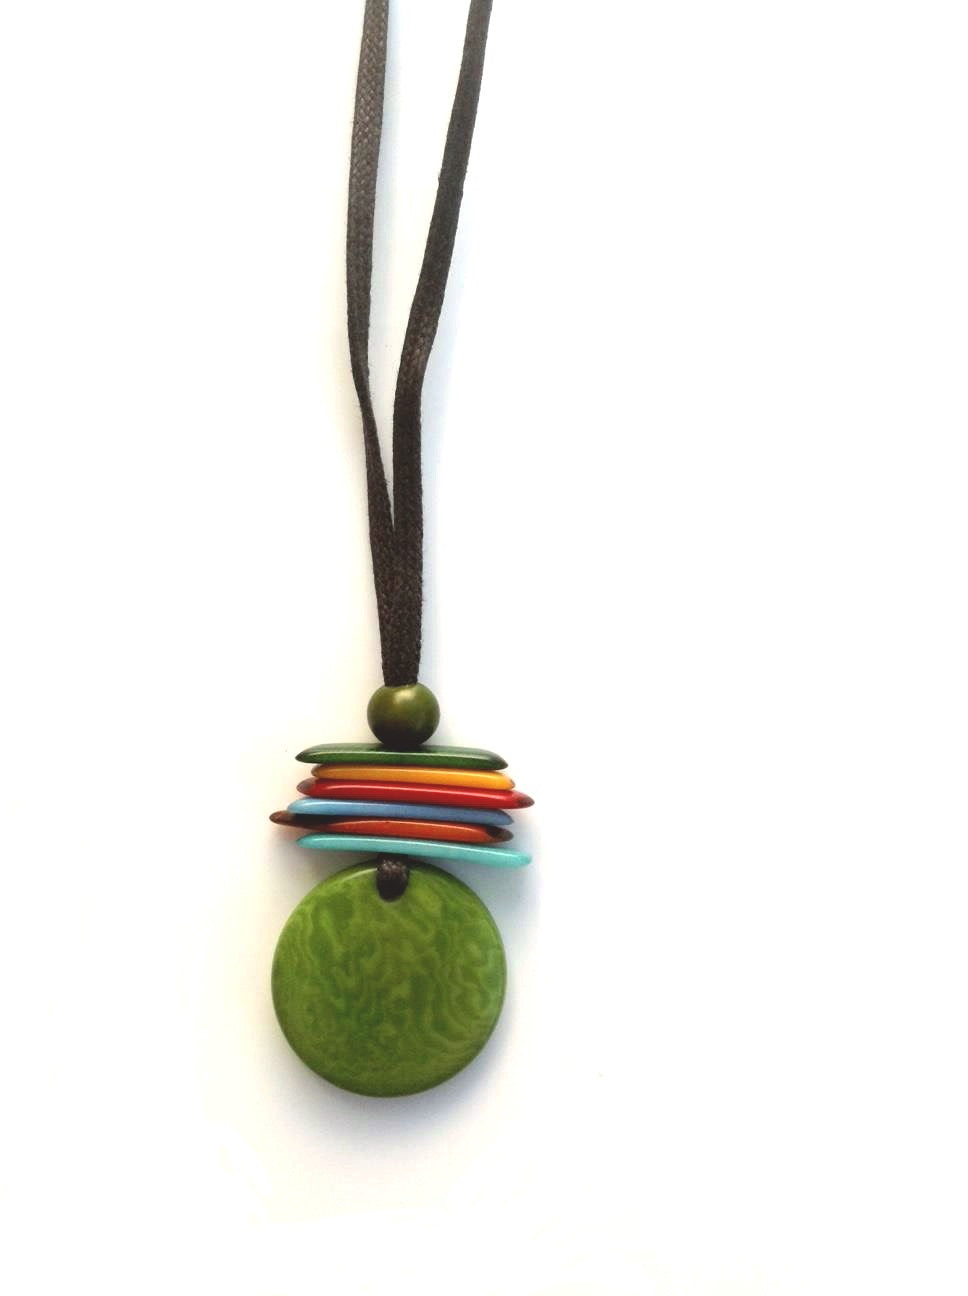 Maka pendant necklace - Green Pistachio